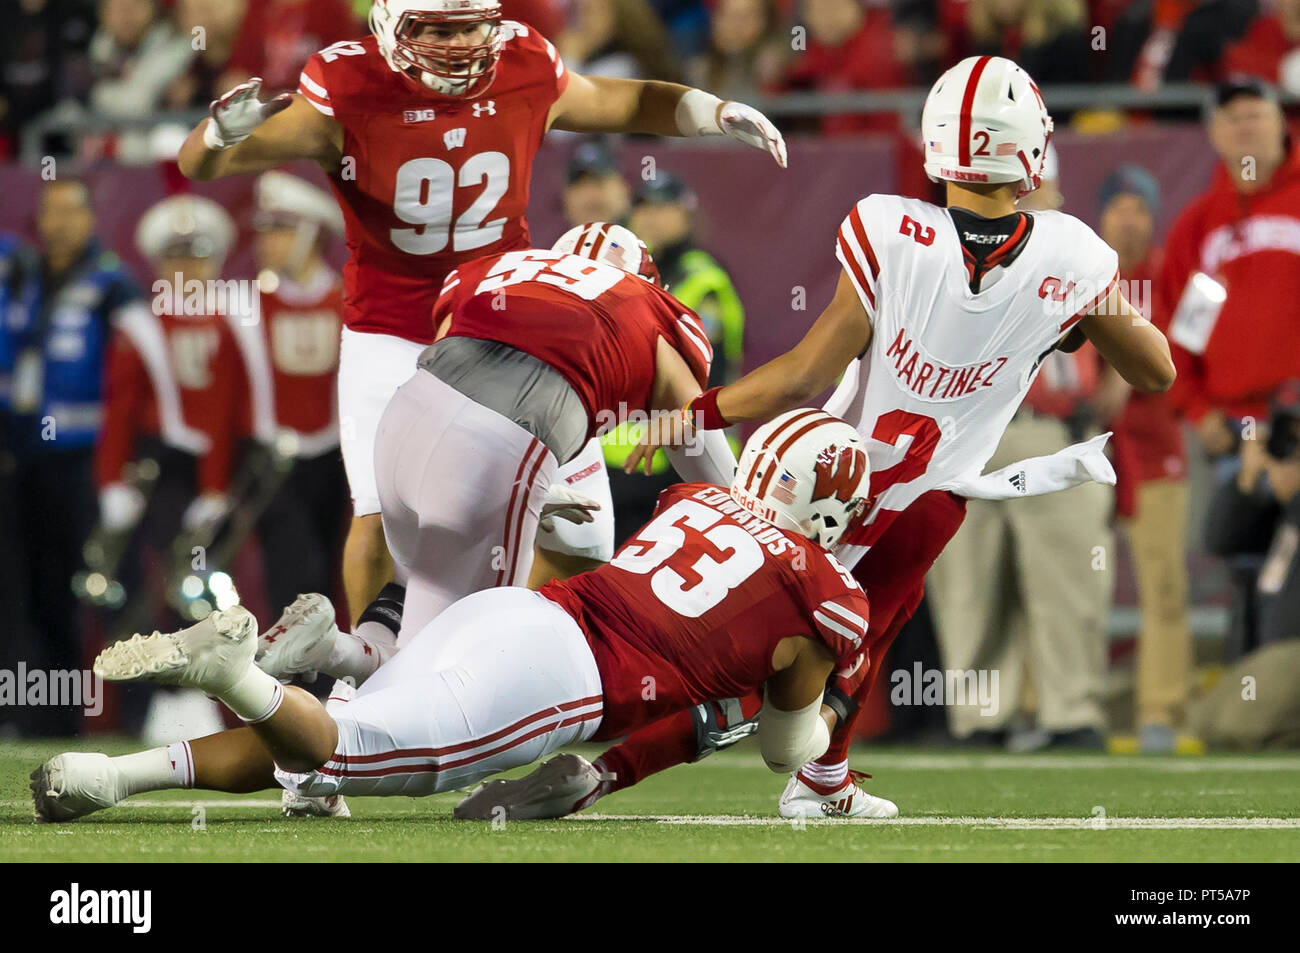 best service 5fc09 bc8f5 Madison, WI, USA. 6th Oct, 2018. Wisconsin Badgers ...